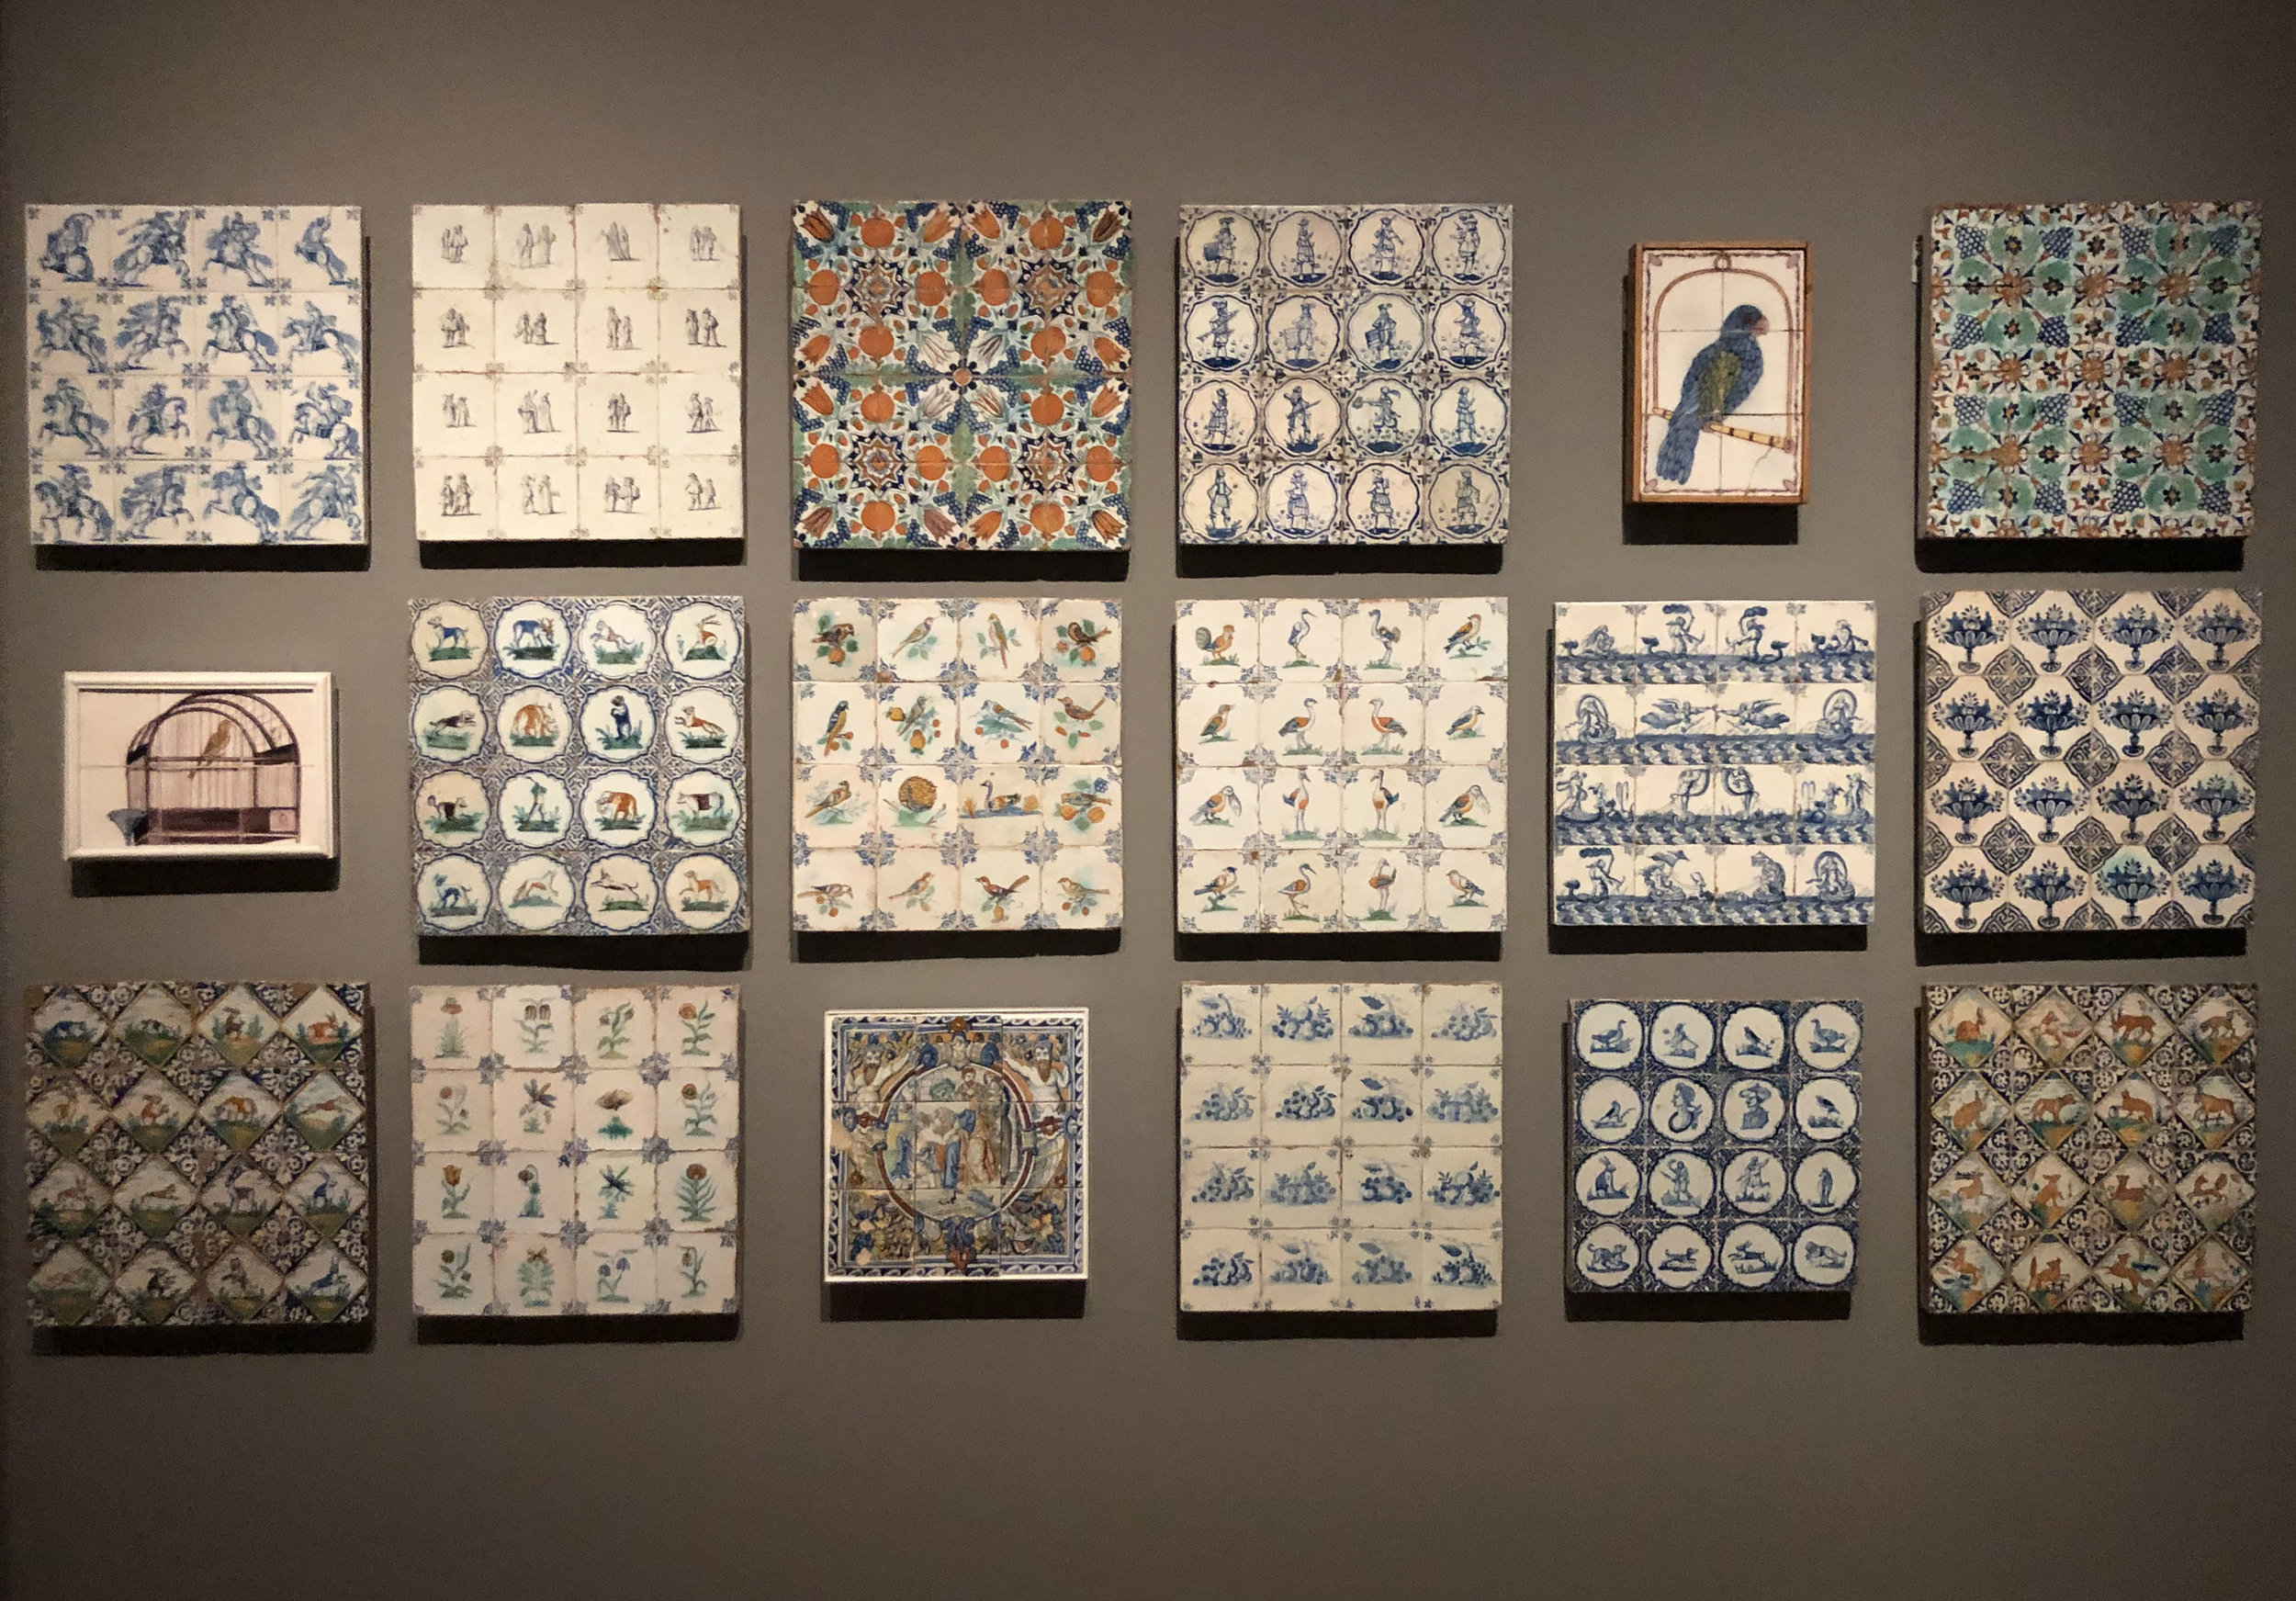 A portion of Rijksmuseum's Dutch Tile Collection